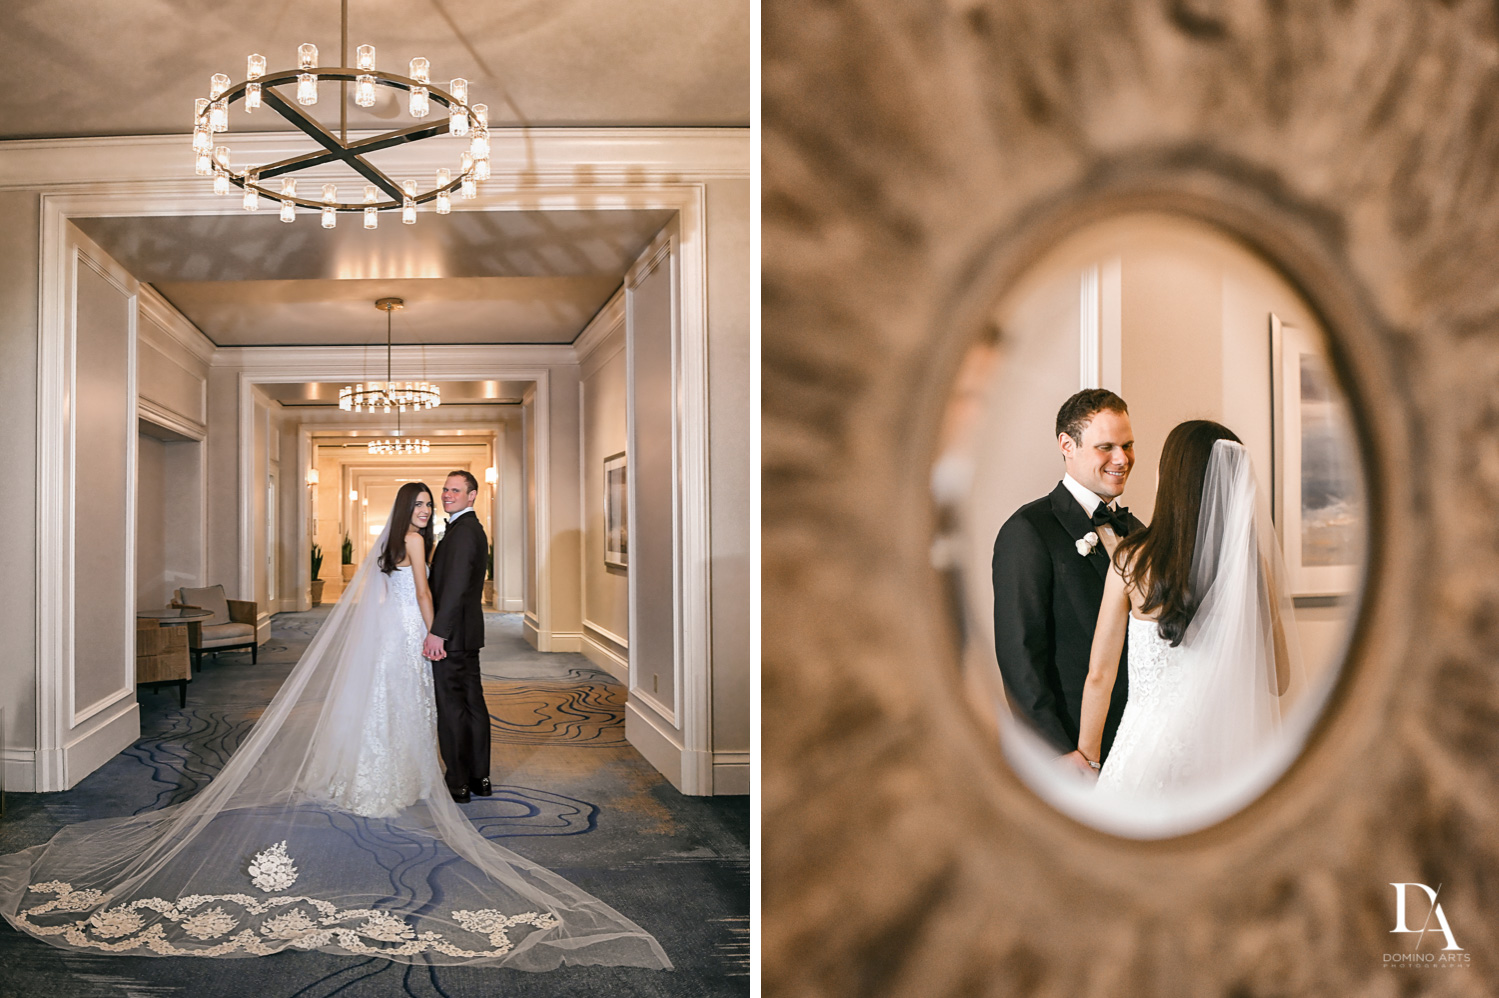 portraits at A Ritz Carlton Wedding in Key Biscayne by Domino Arts Photography